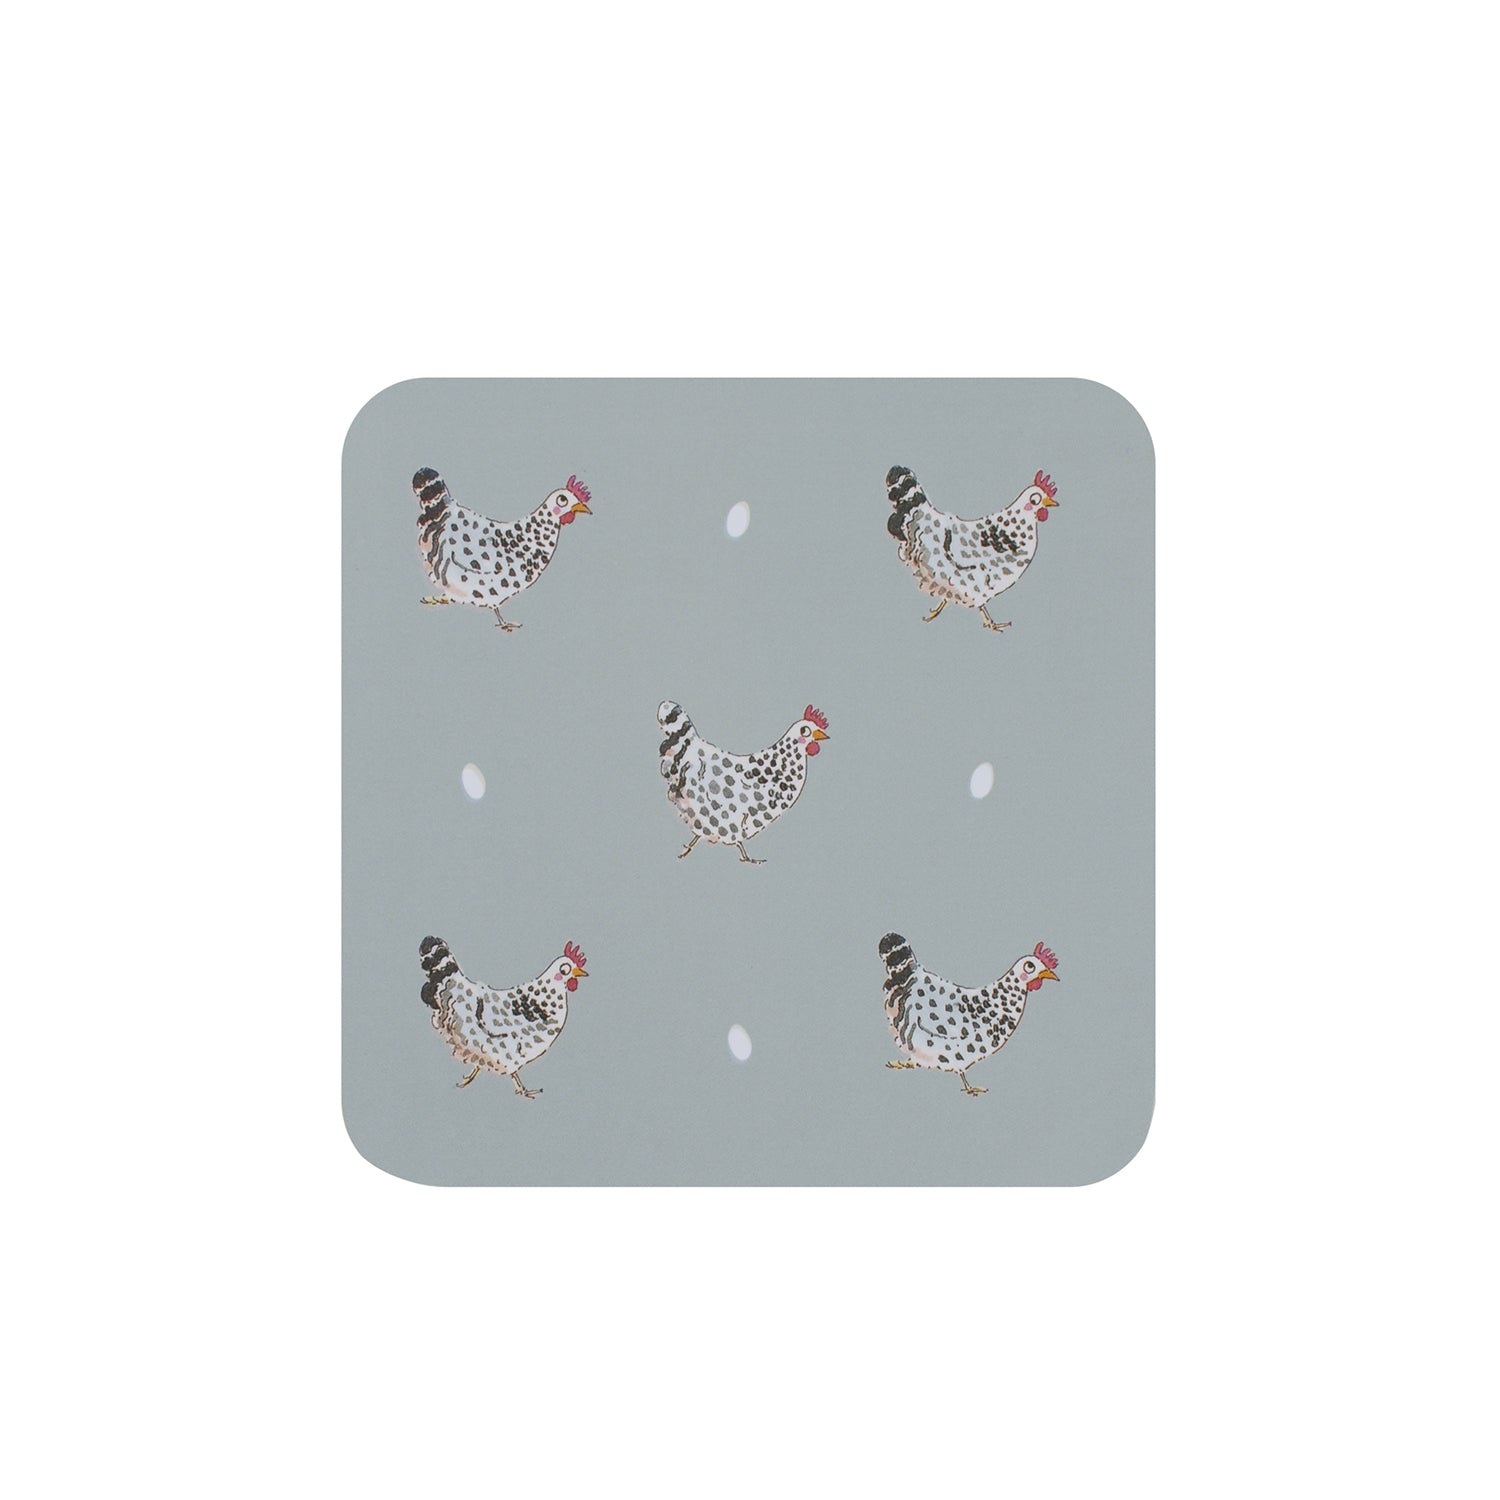 Chicken Coasters - Set of 4